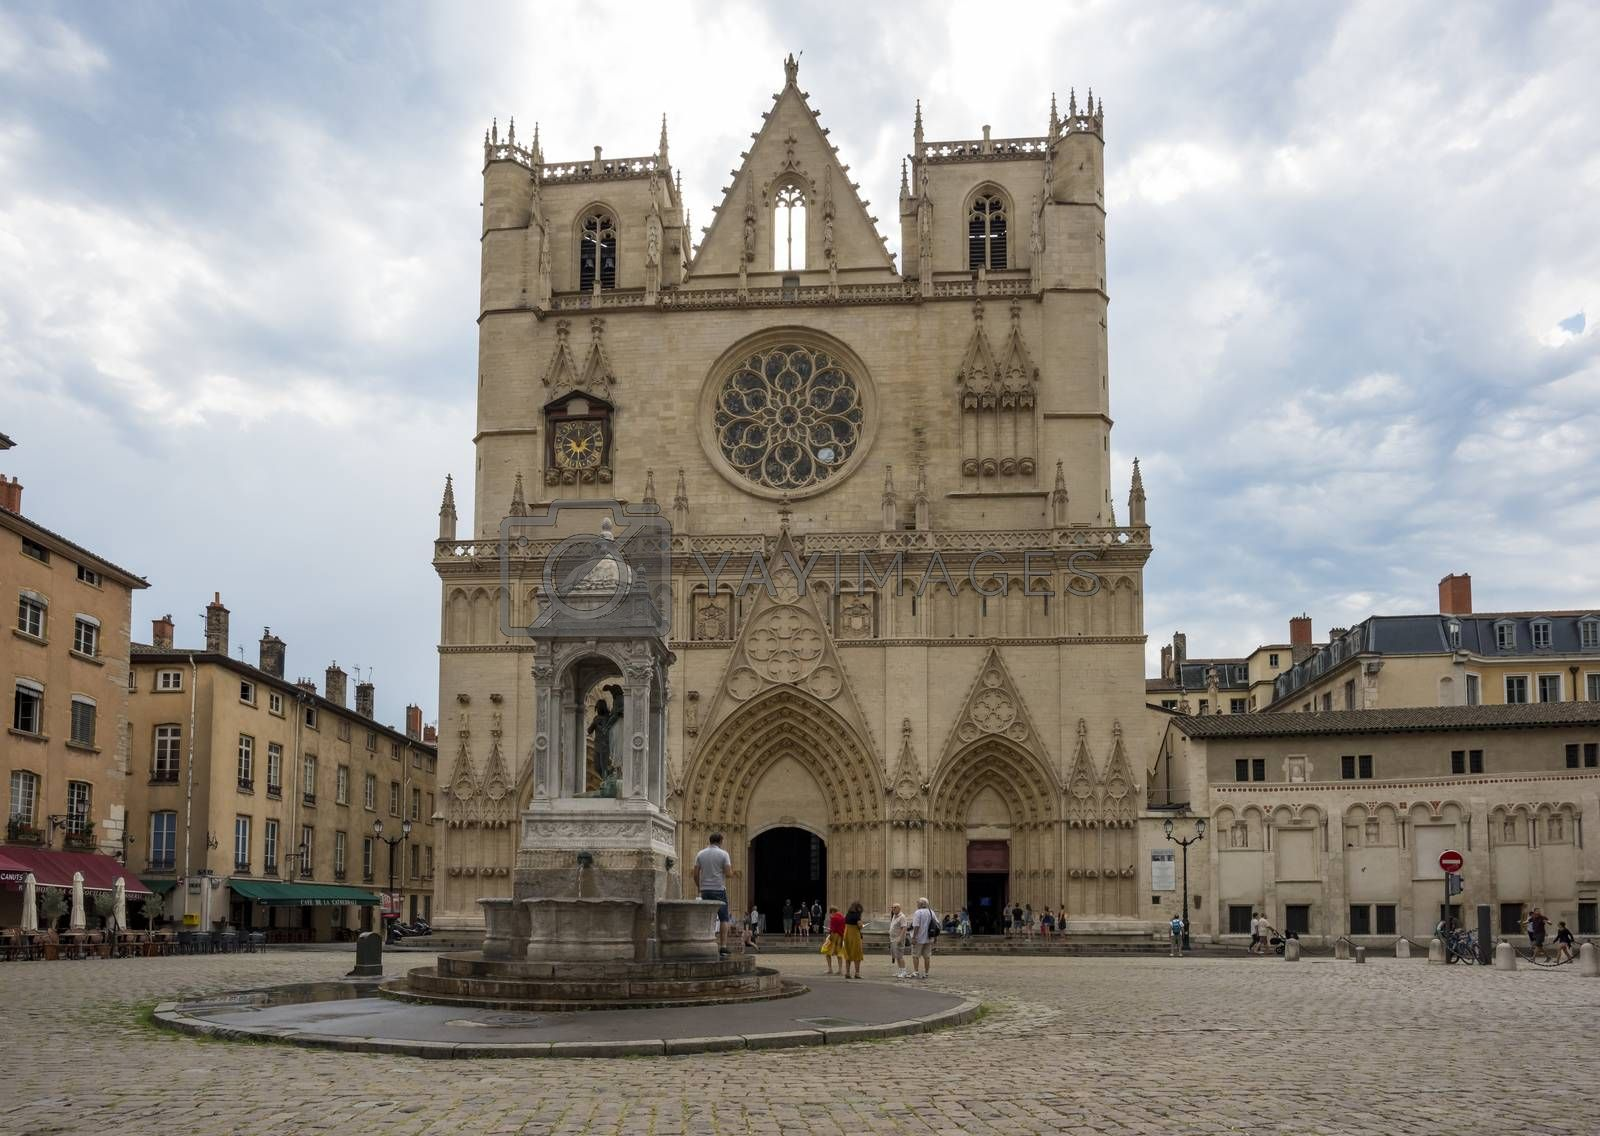 Cathedral Saint-Jean-Baptiste de Lyon with his fountain, Roman Catholic church located on Place Saint-Jean in Lyon, France